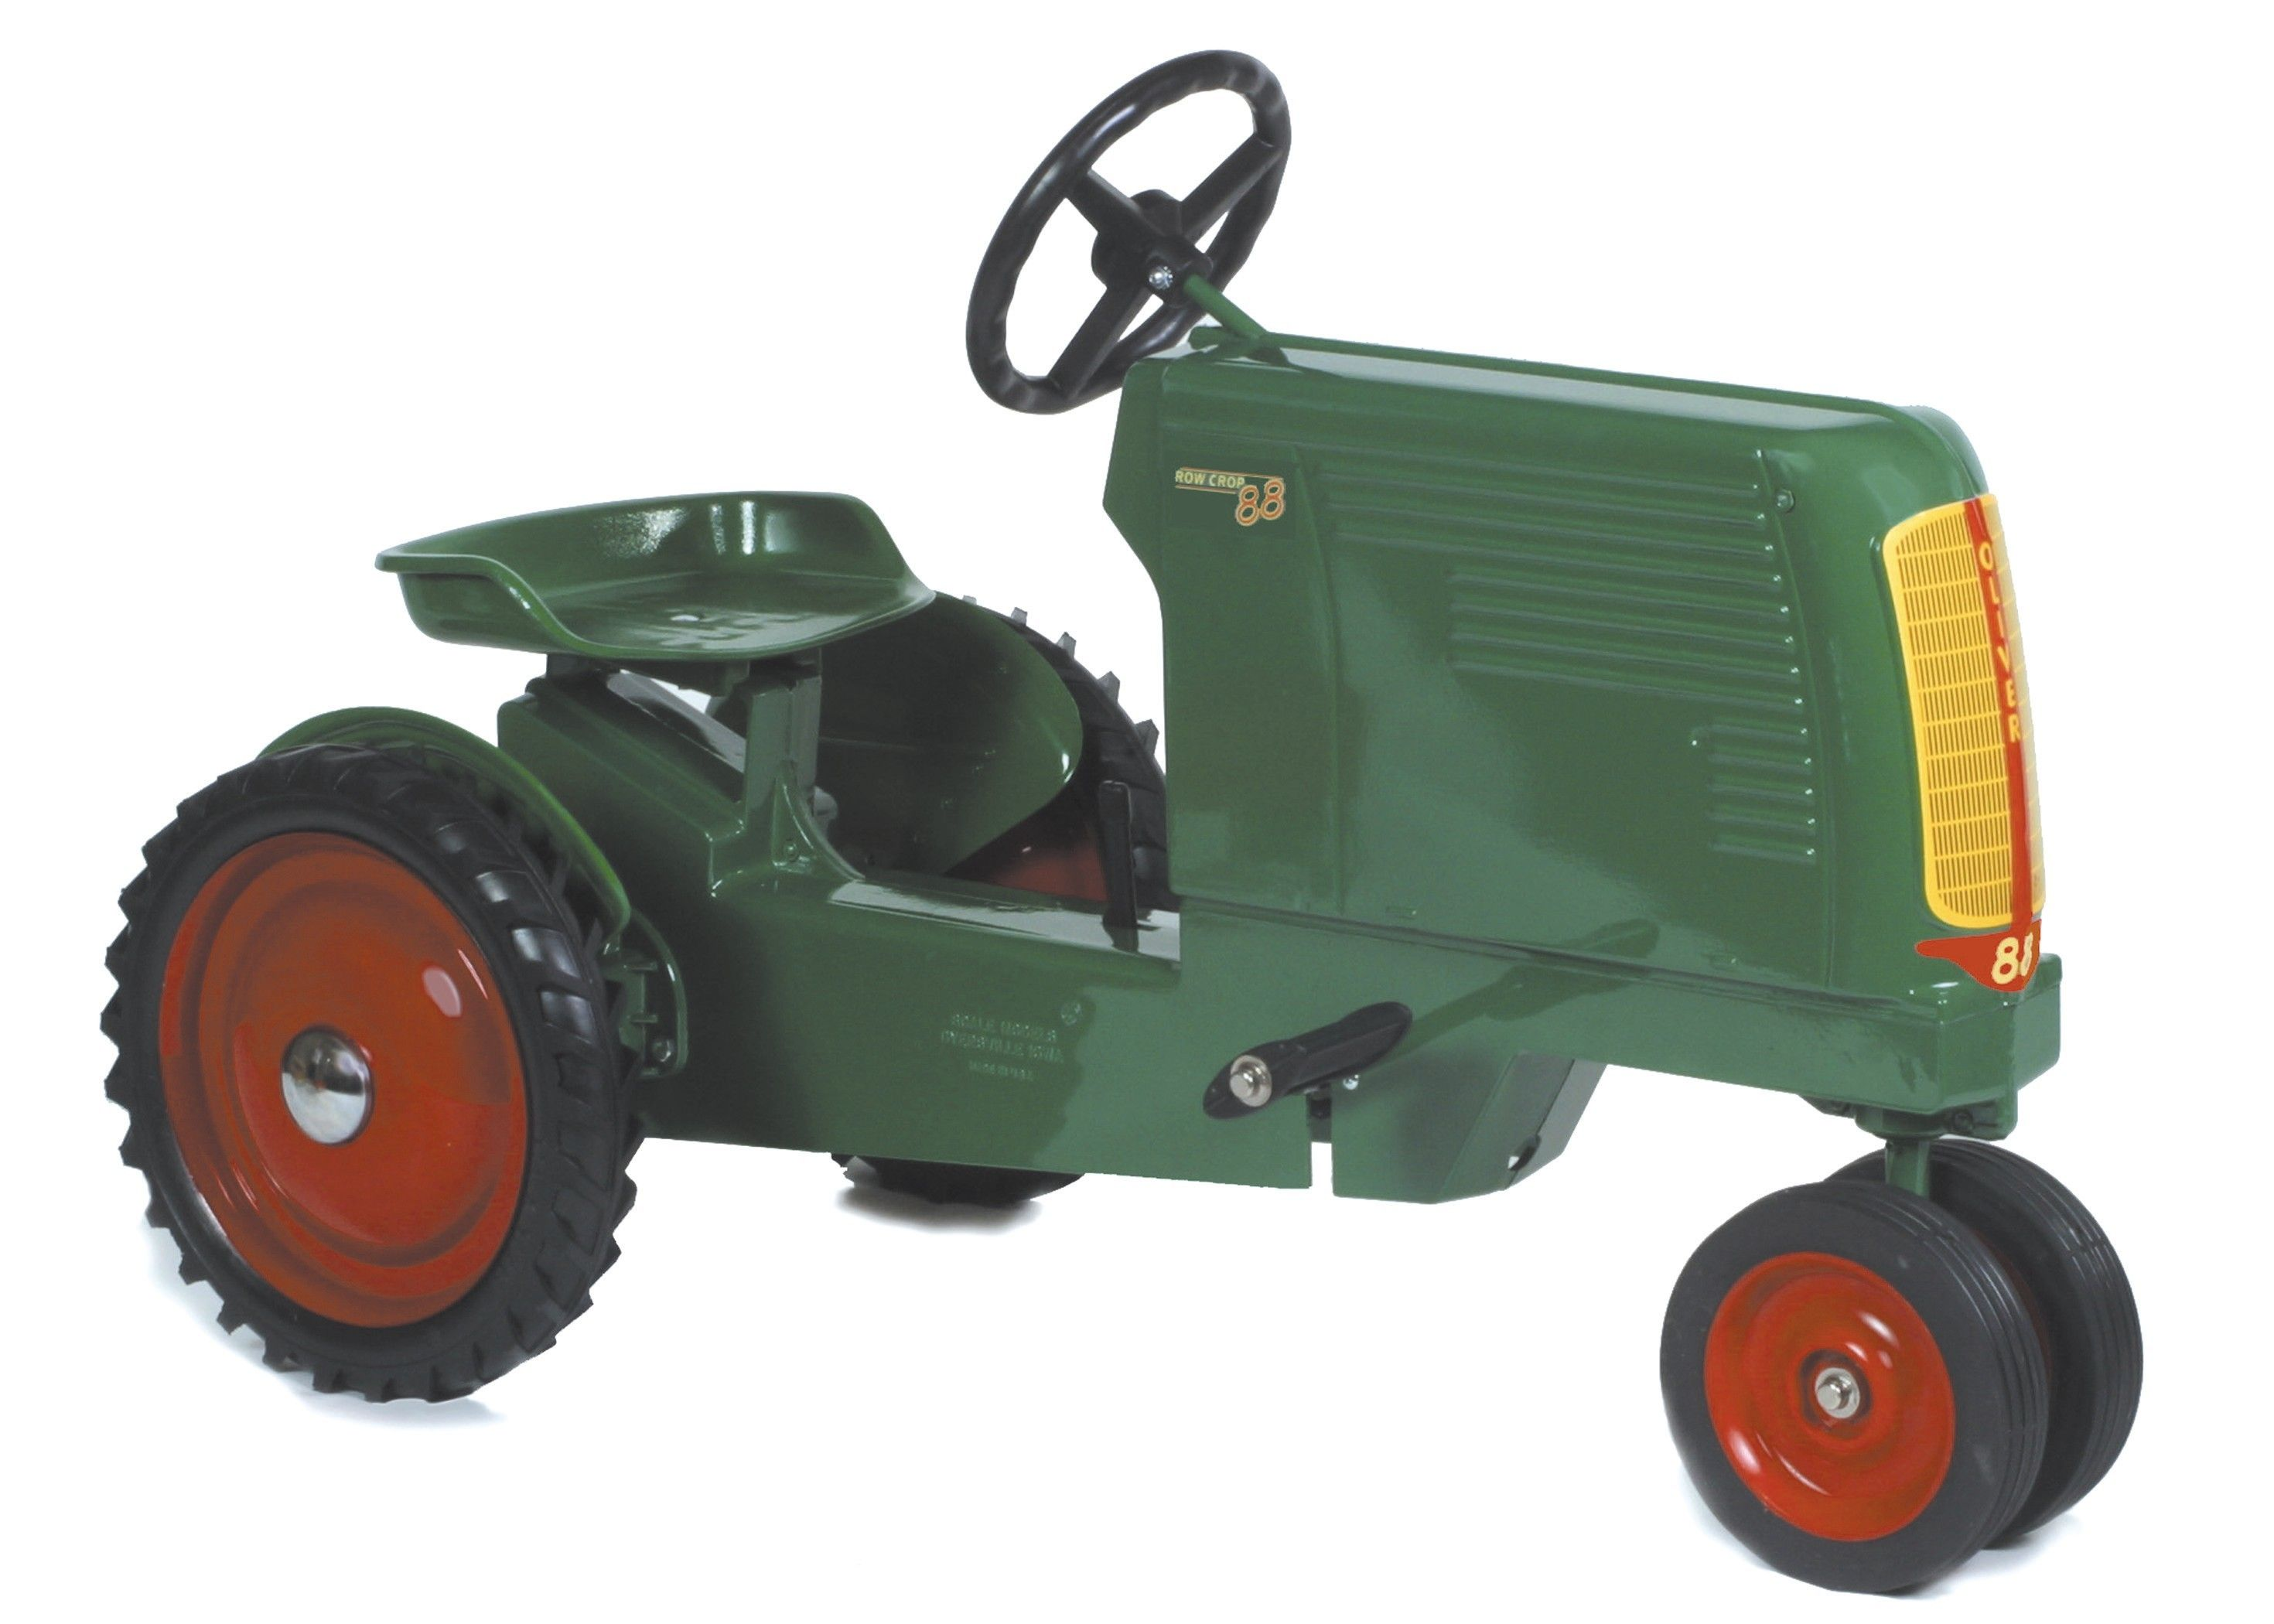 Pedal Tractor Parts : Ride pedal tractor parts ford engine and